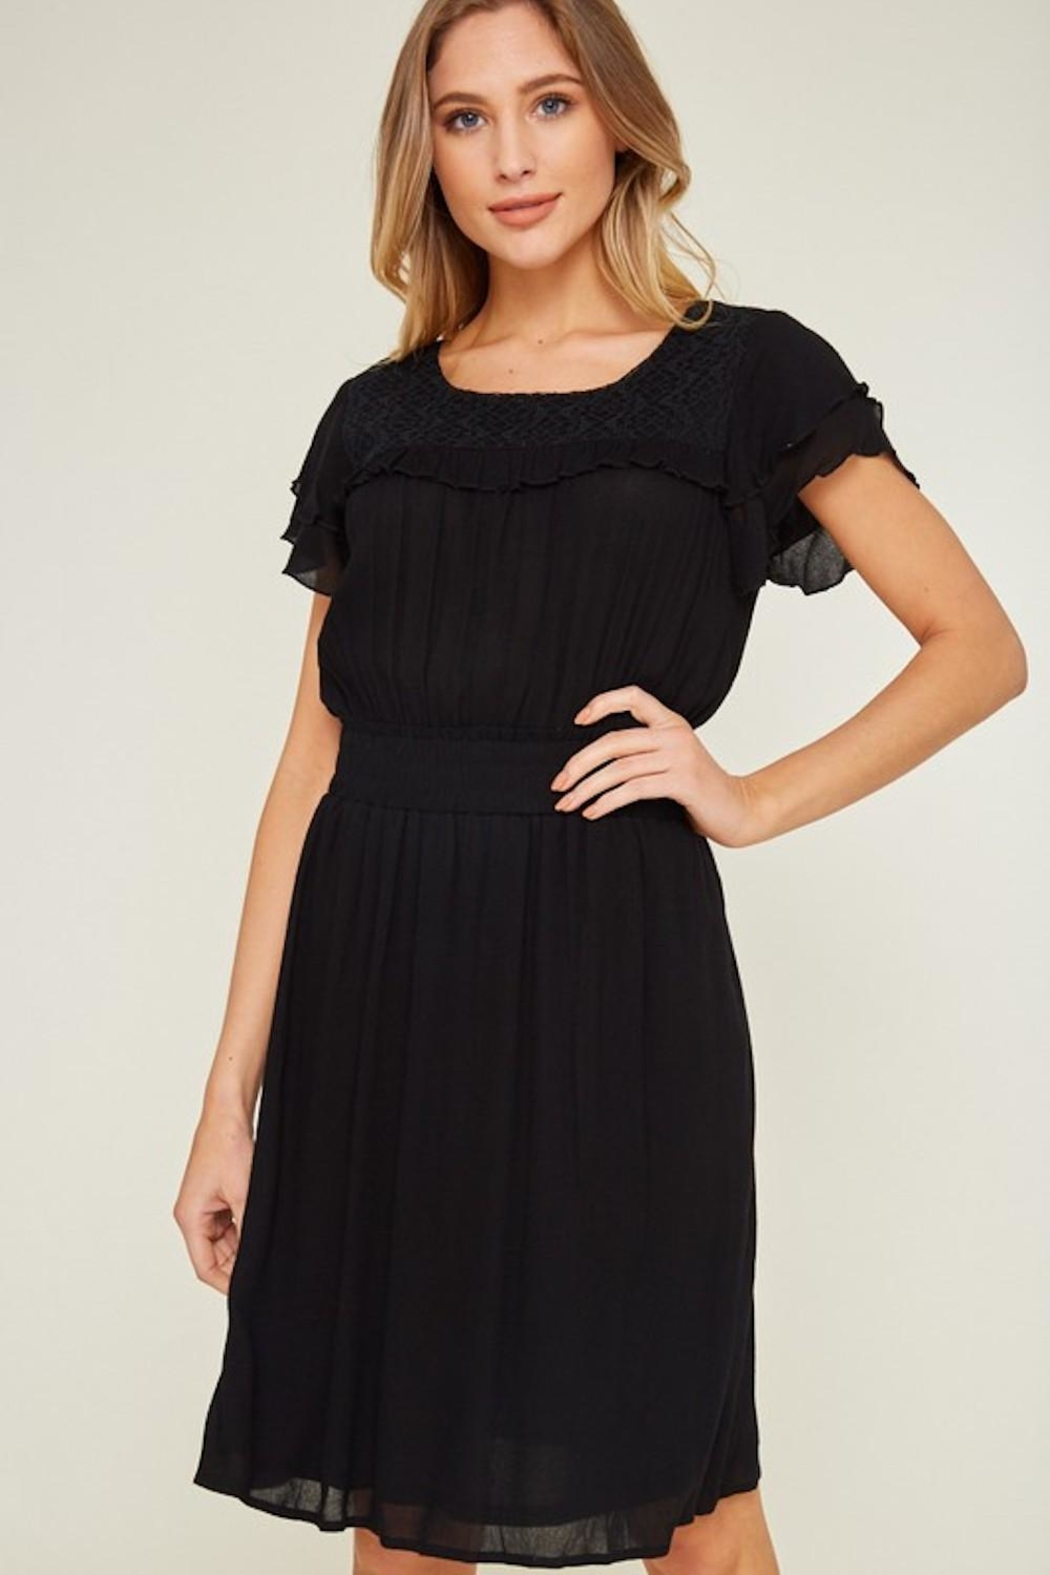 LLove USA Dainty Black Dress - Side Cropped Image